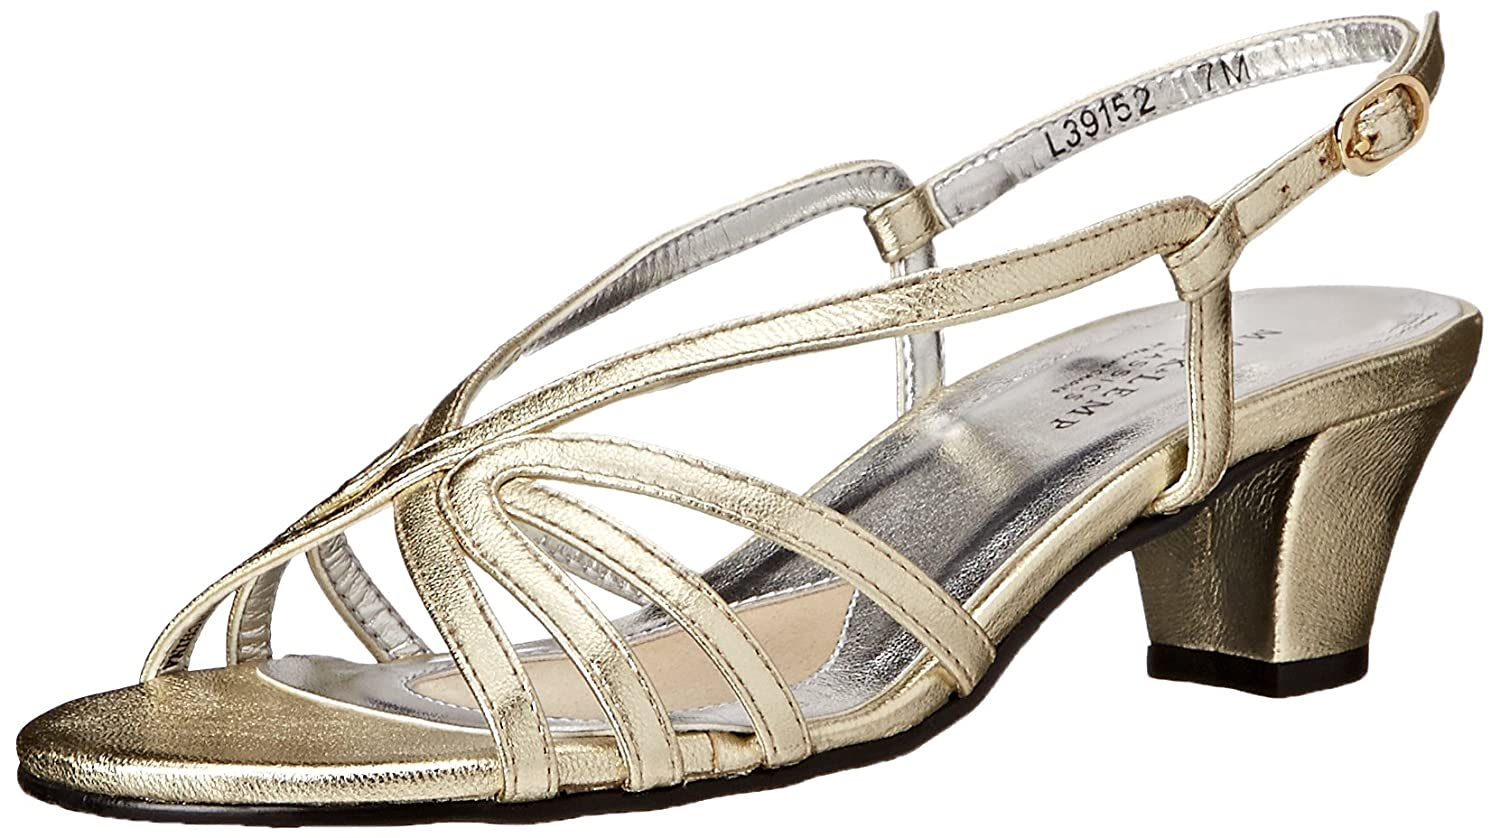 Walking Cradles Mark Lemp by Women's Leash Dress Sandal B00EJGYUA2 8 W US|Gold Nappa